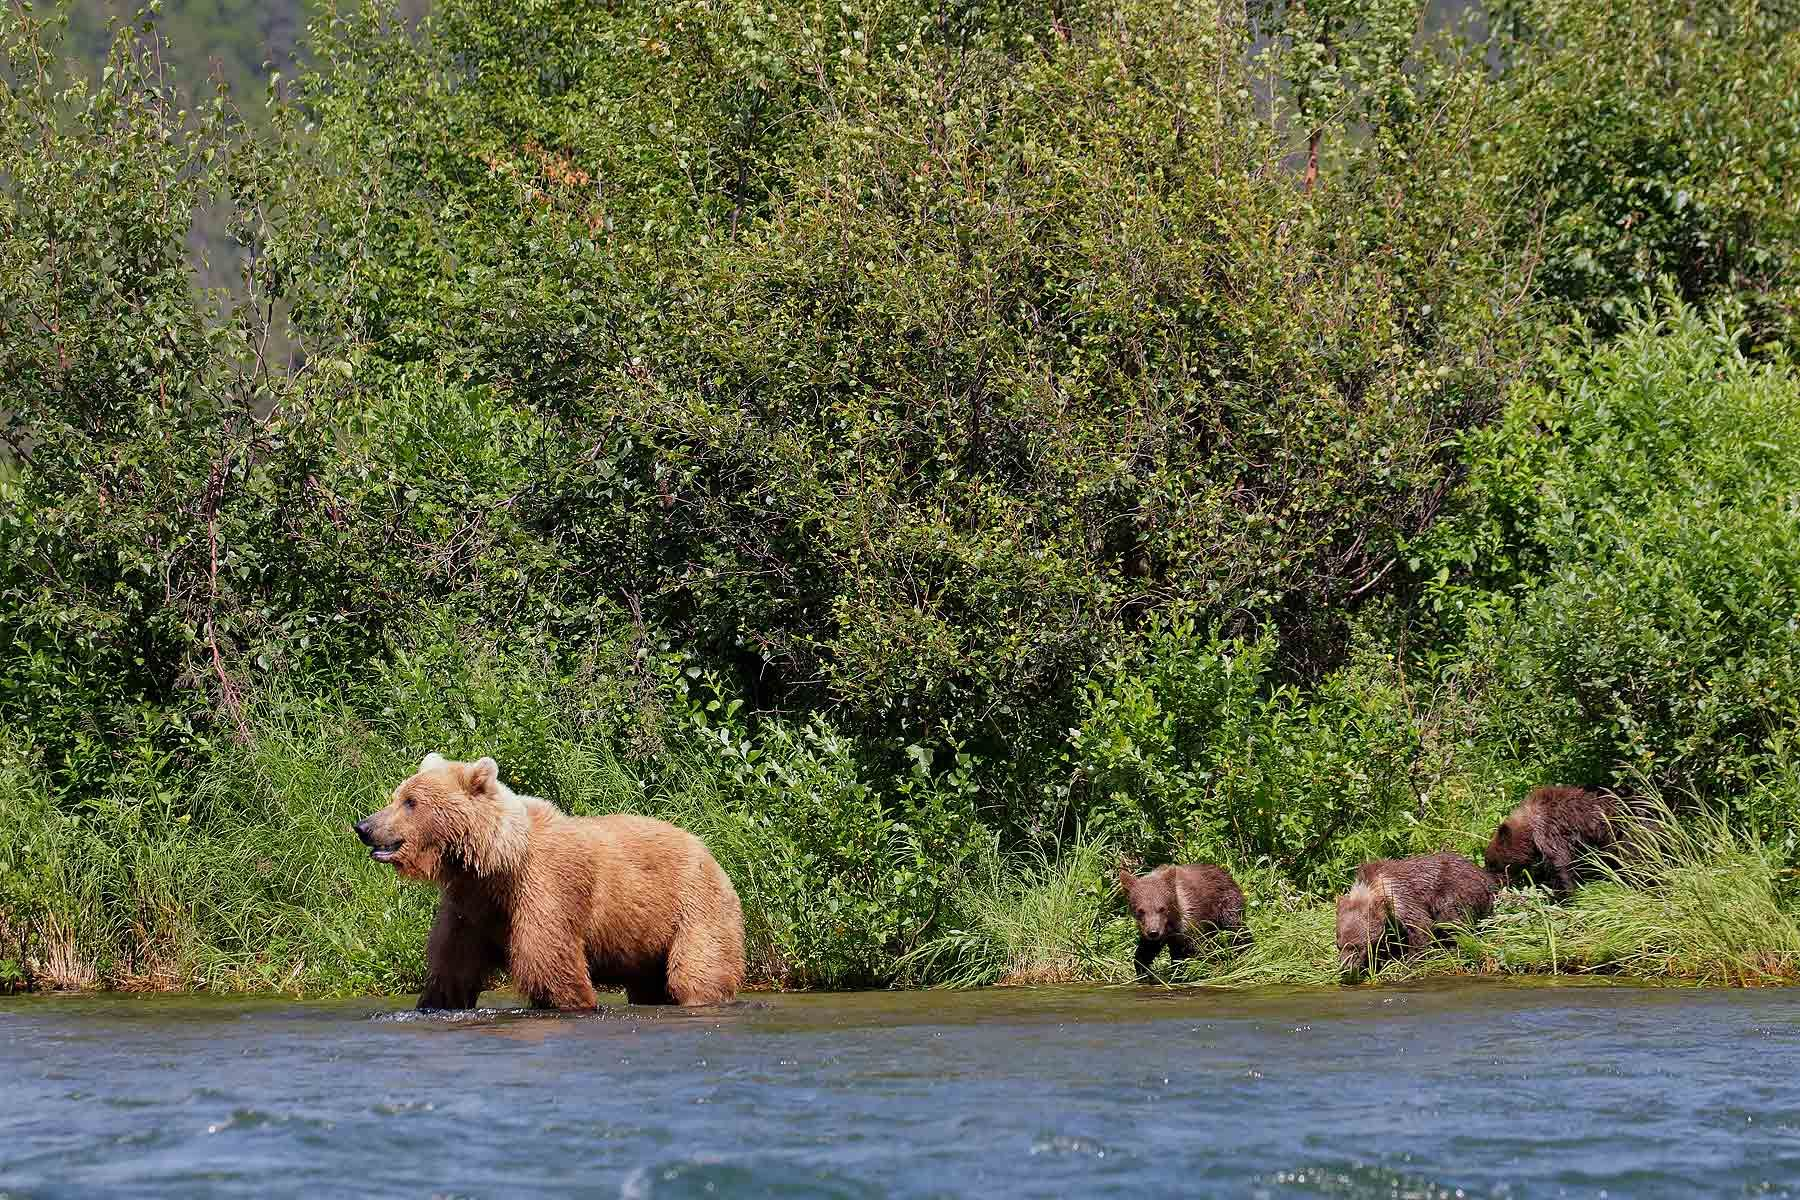 Coastal-brown-bear-standing-in-river-with-cubs_44A3273-Alagnak-River,-Katmai-National-Park-&-Preserve,-AK,-USA.jpg